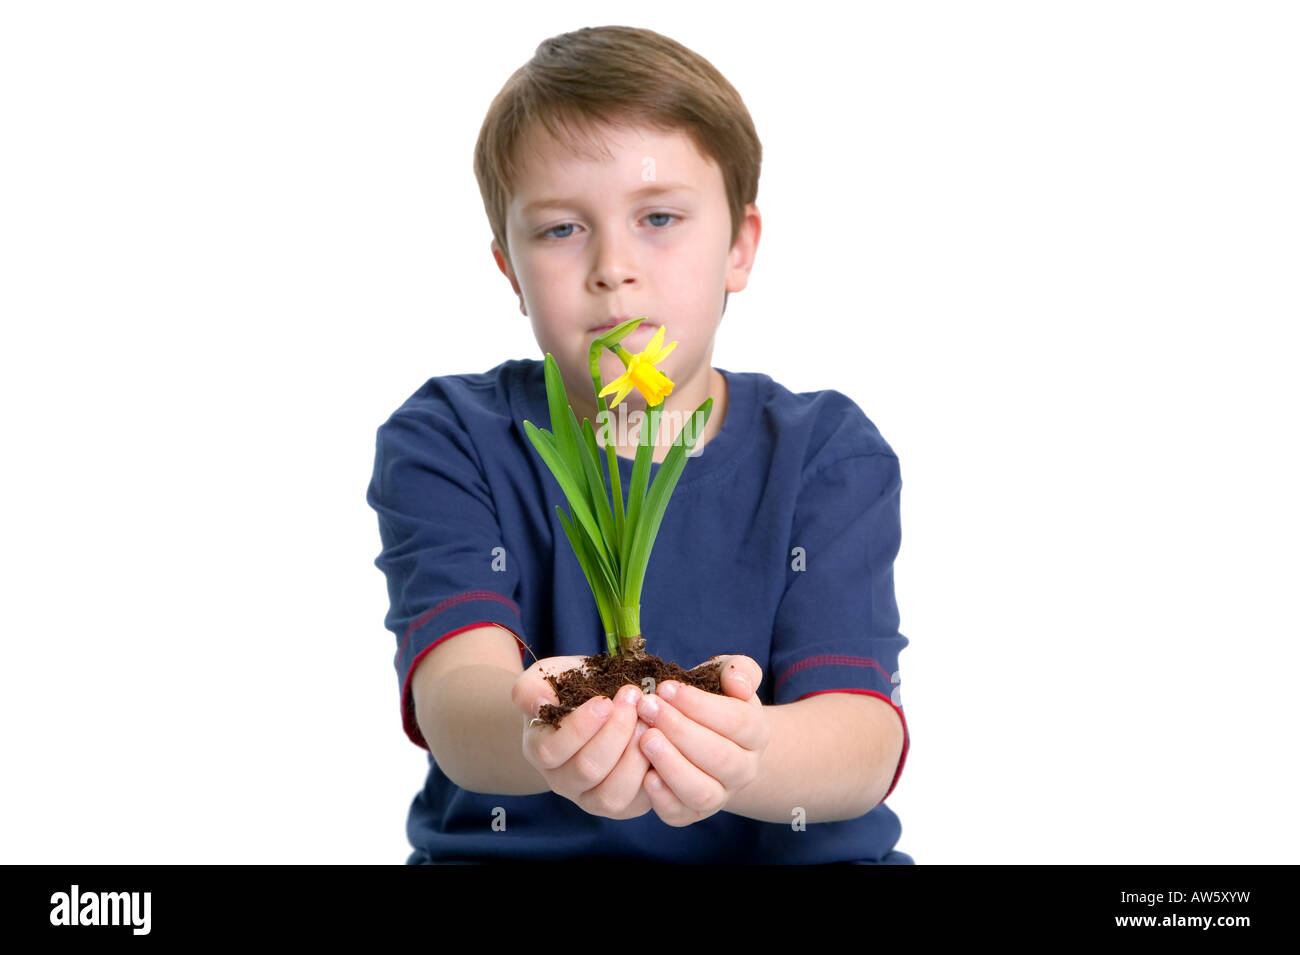 A young boy looking at a daffodil he is holding in outstretched arms shot against a white background Stock Photo